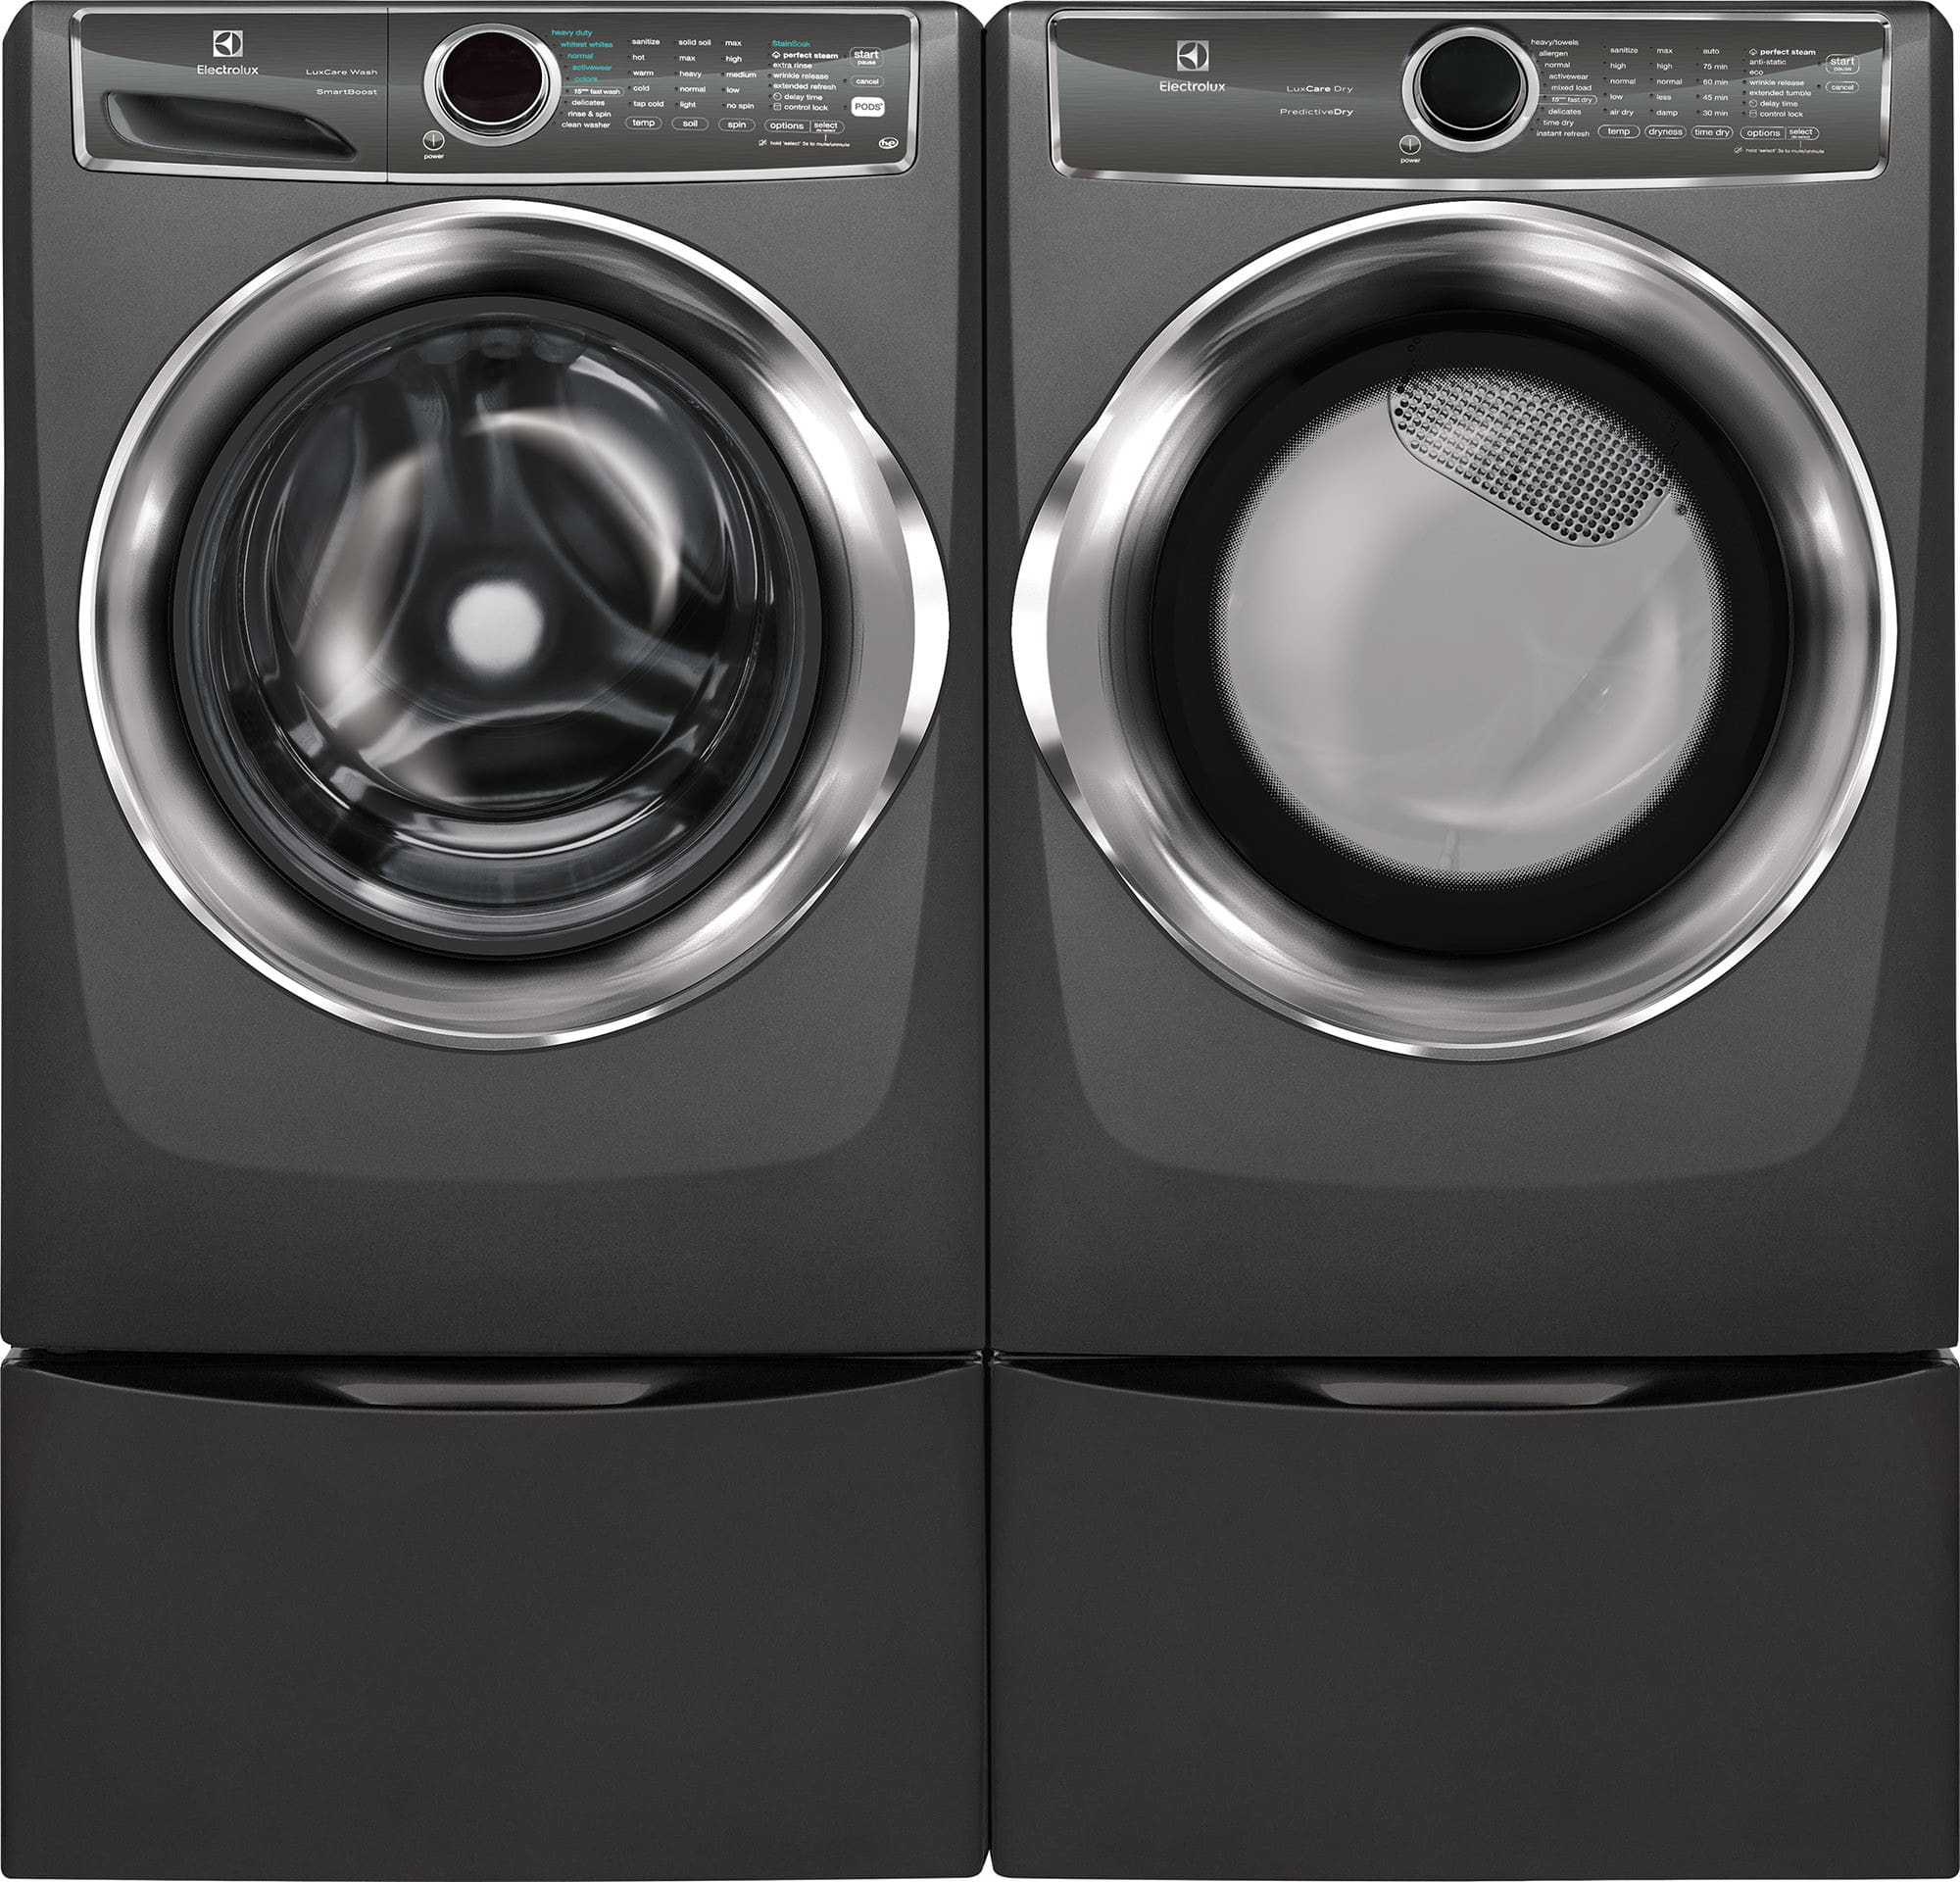 that twin sidekick for wash lg time so laundry the pedestal electrolux waiting much pin dreads everyone day